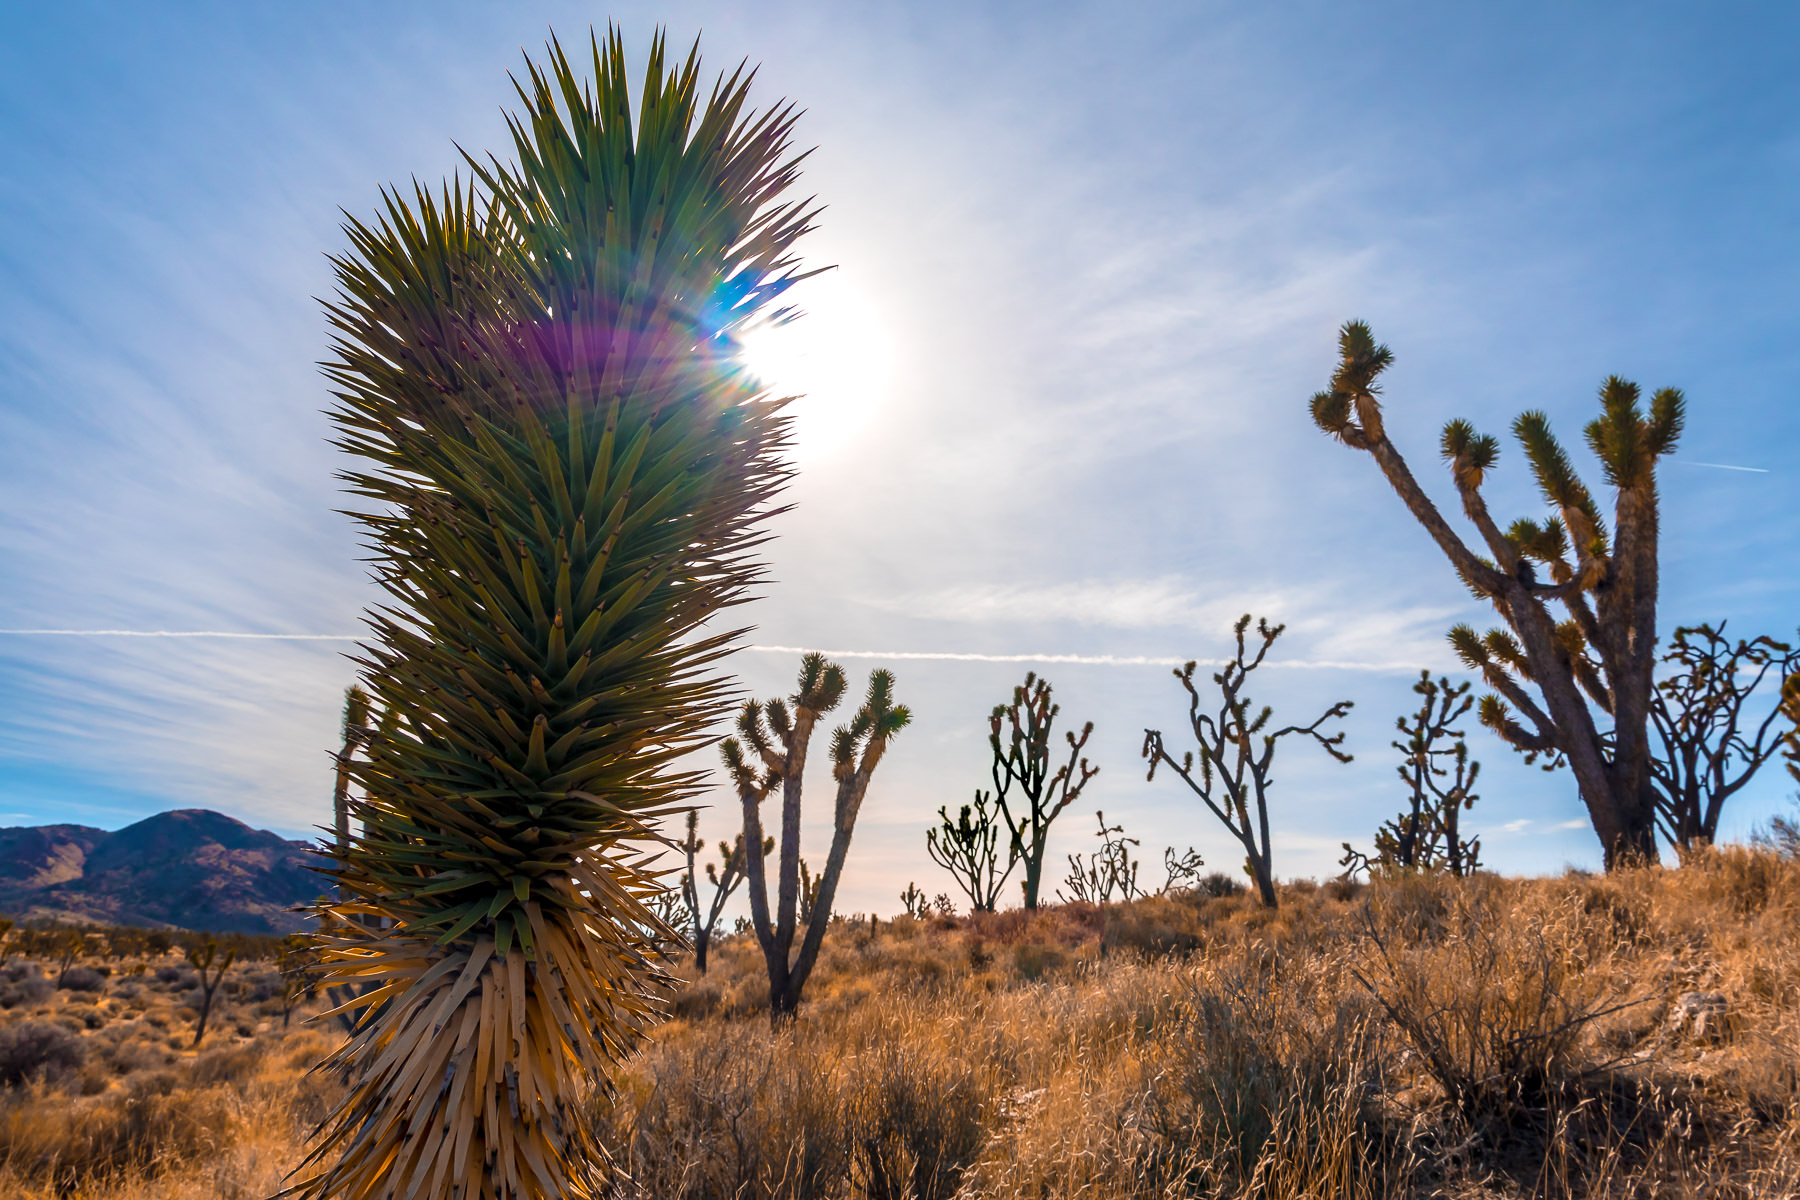 The sun hangs in the sky over the flora of California's Mojave National Preserve.